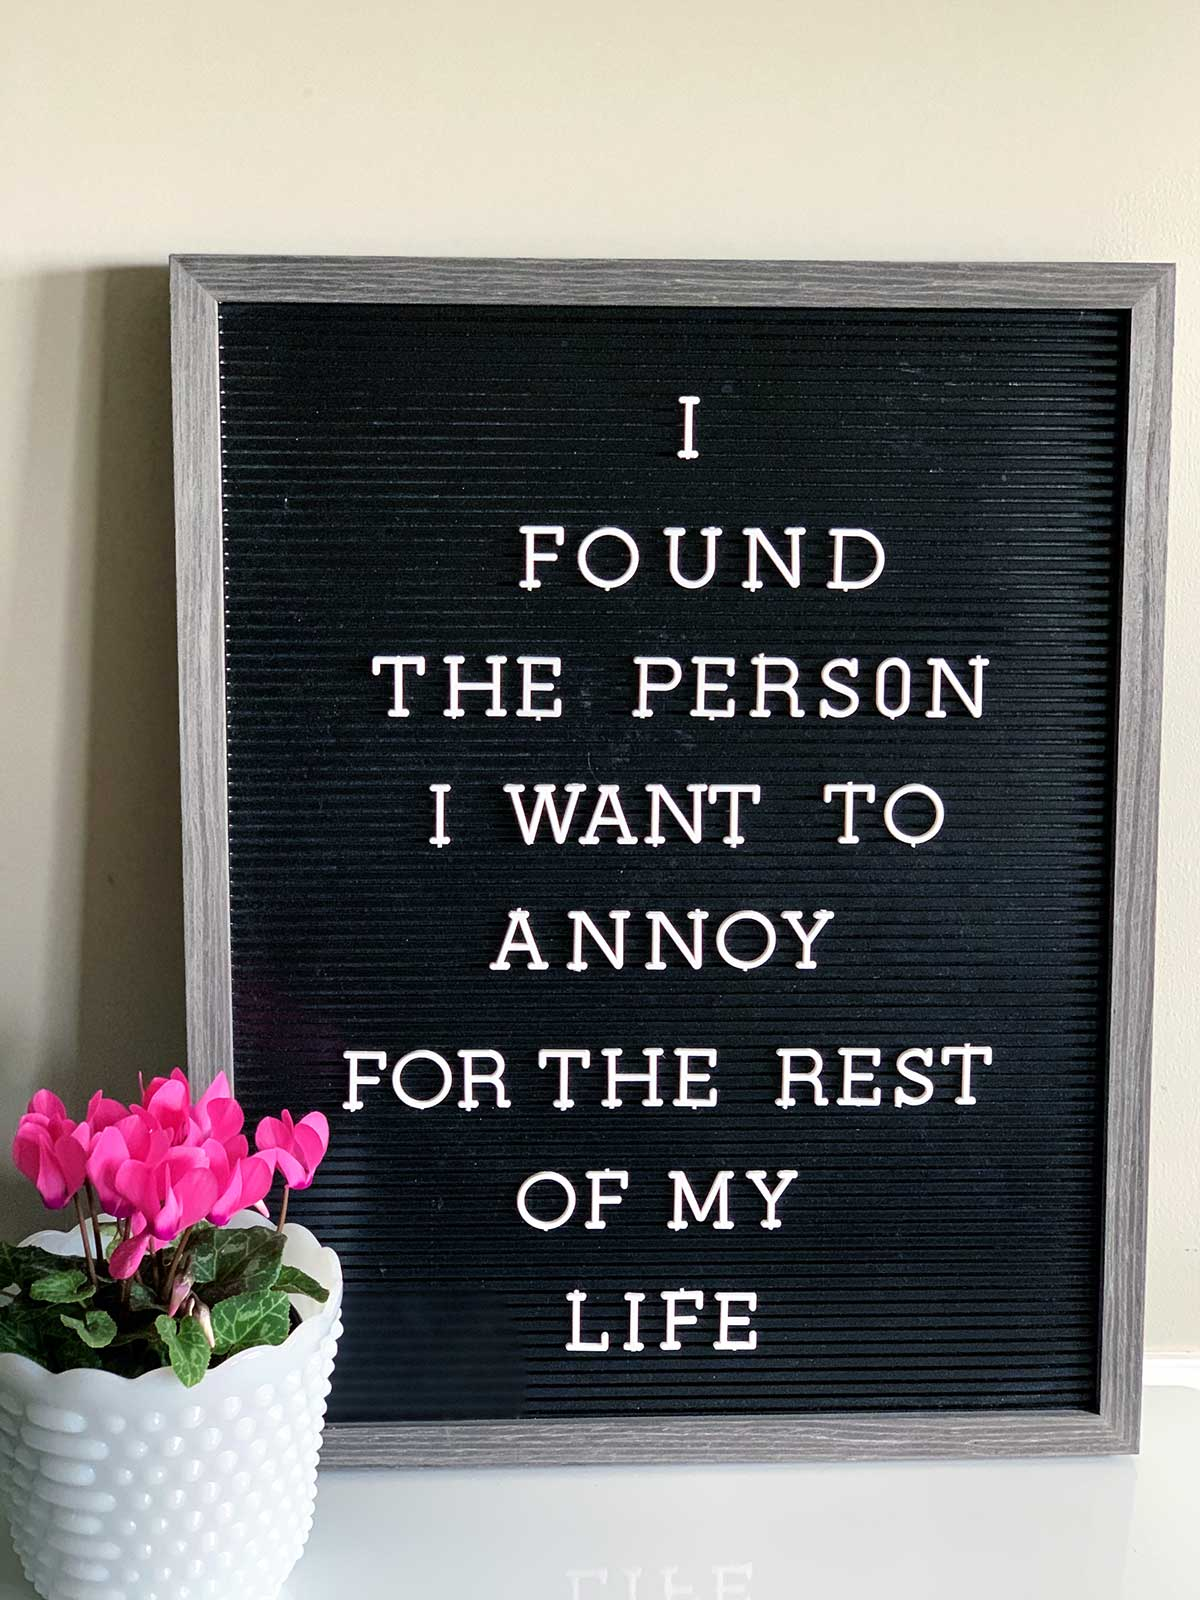 Letter board with the saying - I found the person I want to annoy for the rest of my life.